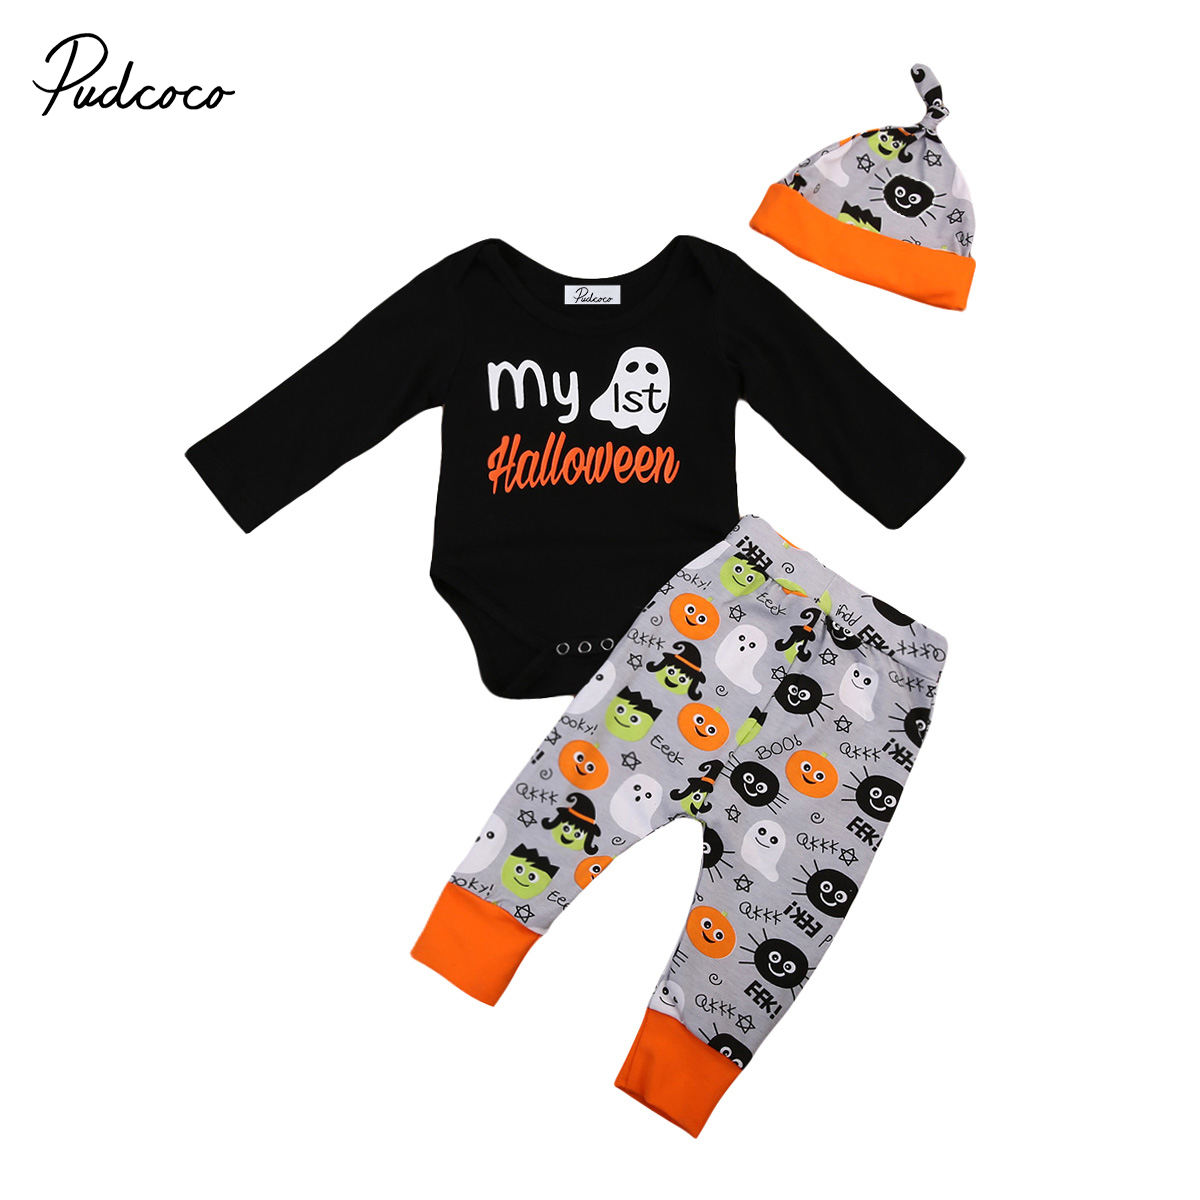 3Pcs Newborn Baby Boy Girl Halloween Tops Romper Pants Hat Outfits Set Clothes Kids Children Infant Boys Girls Clothing Set Soft newborn 0 3 months baby boy girl 5 pcs clothing set cotton cartoon monk tops pants bib hats infant clothes